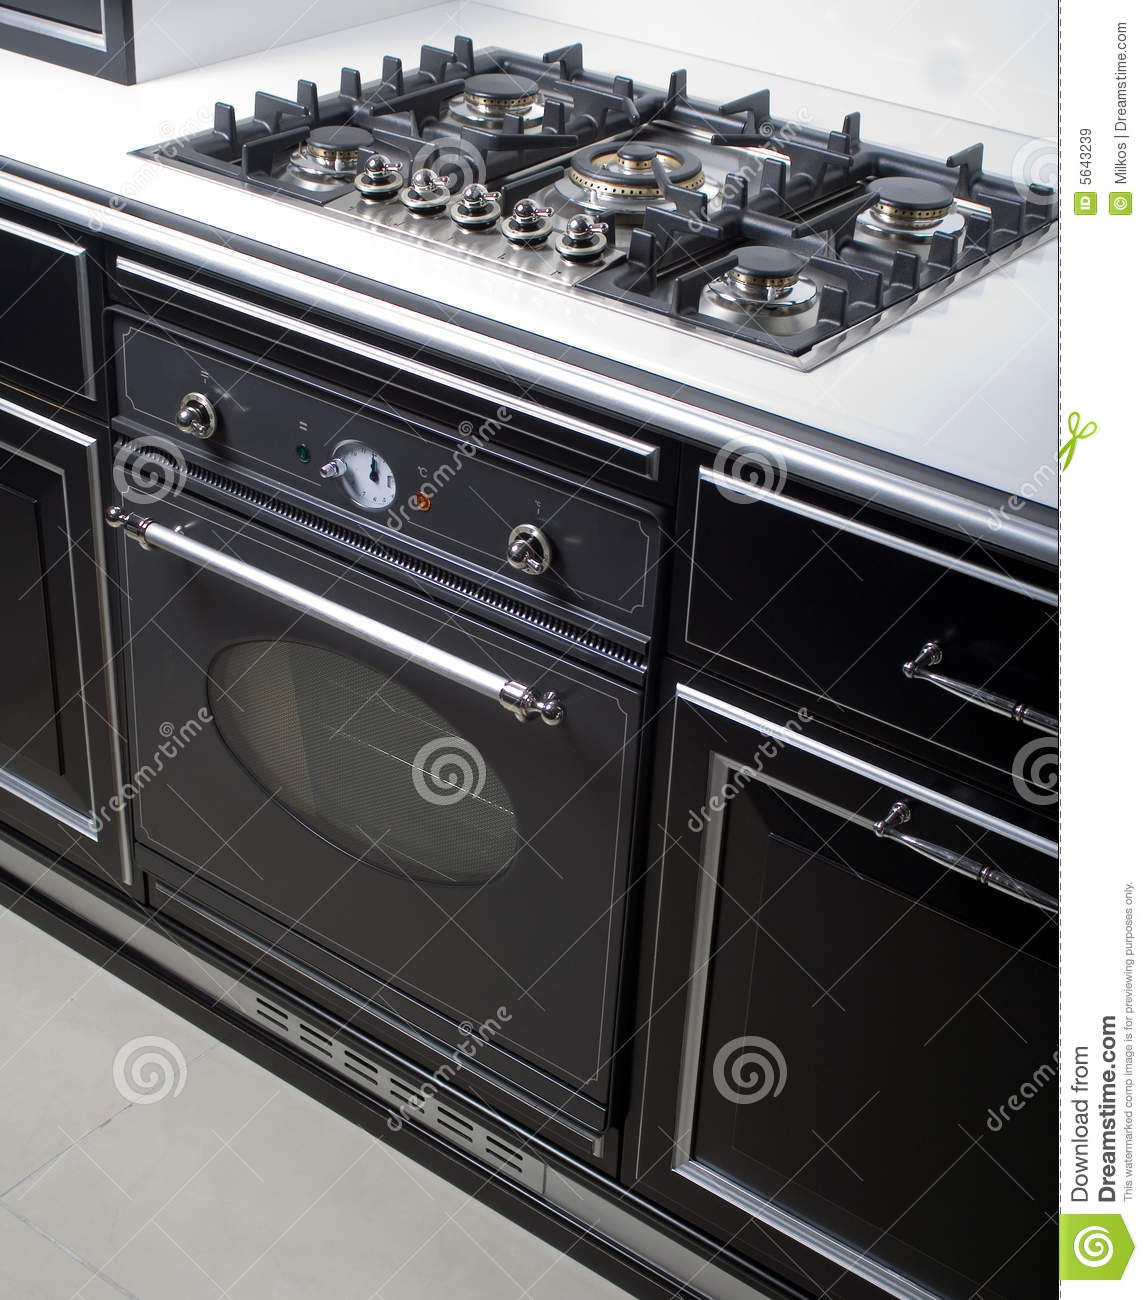 Modern Kitchen Oven: Modern Gas Stove And Oven Stock Image. Image Of Stove